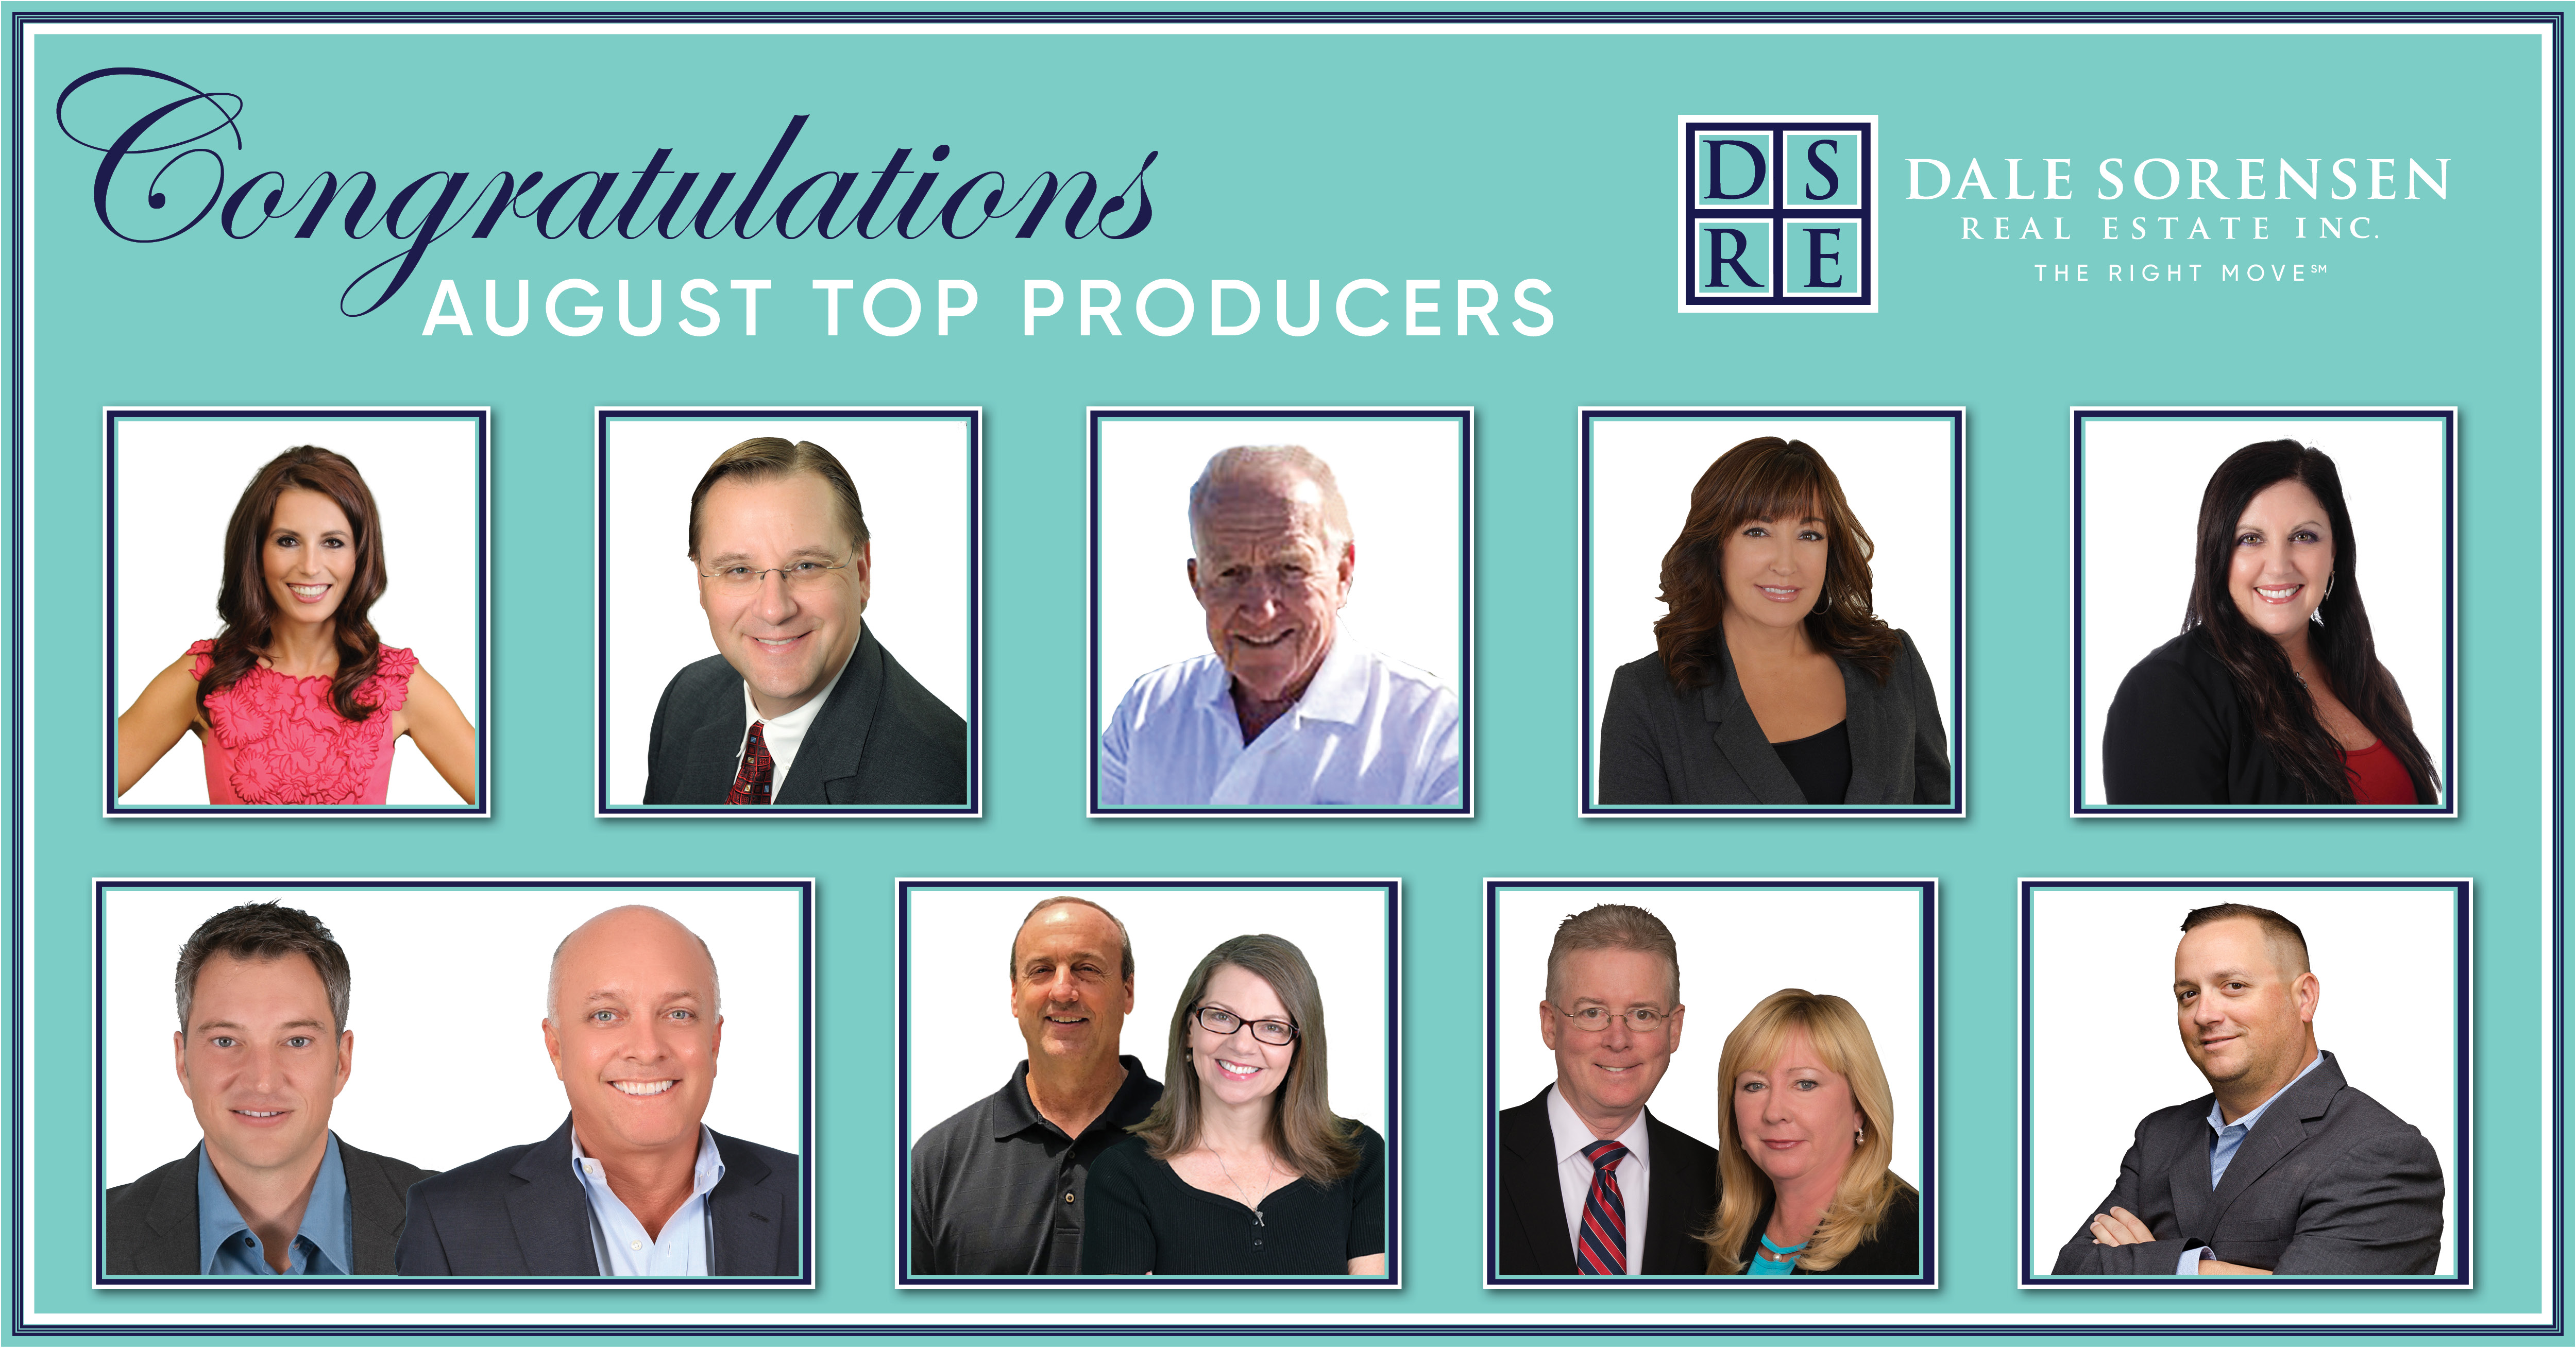 Congratulations August Top Producers Dale Sorensen Real Estate INC The Right Move